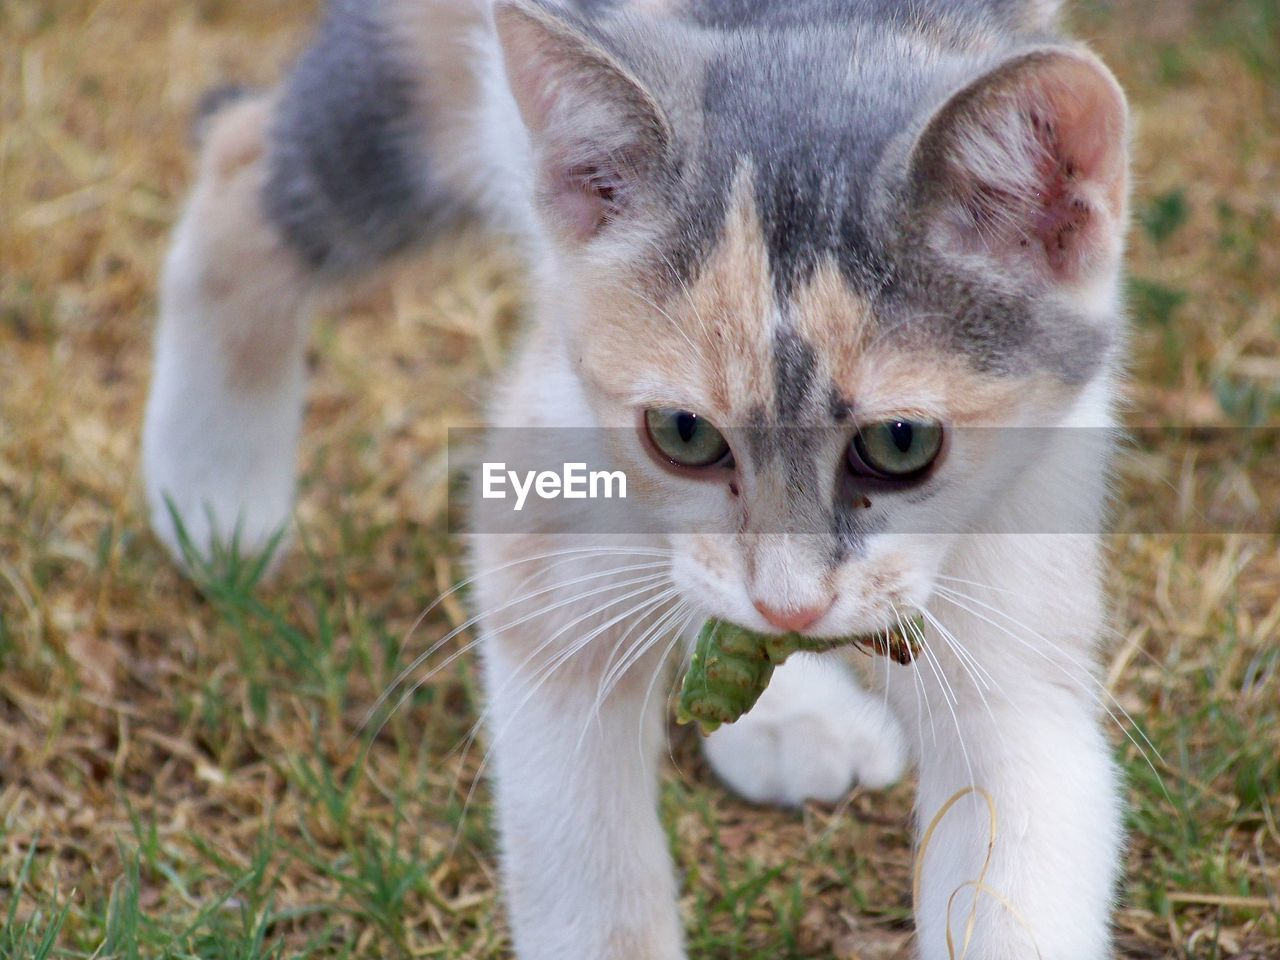 Close-up of cat carrying worm on field